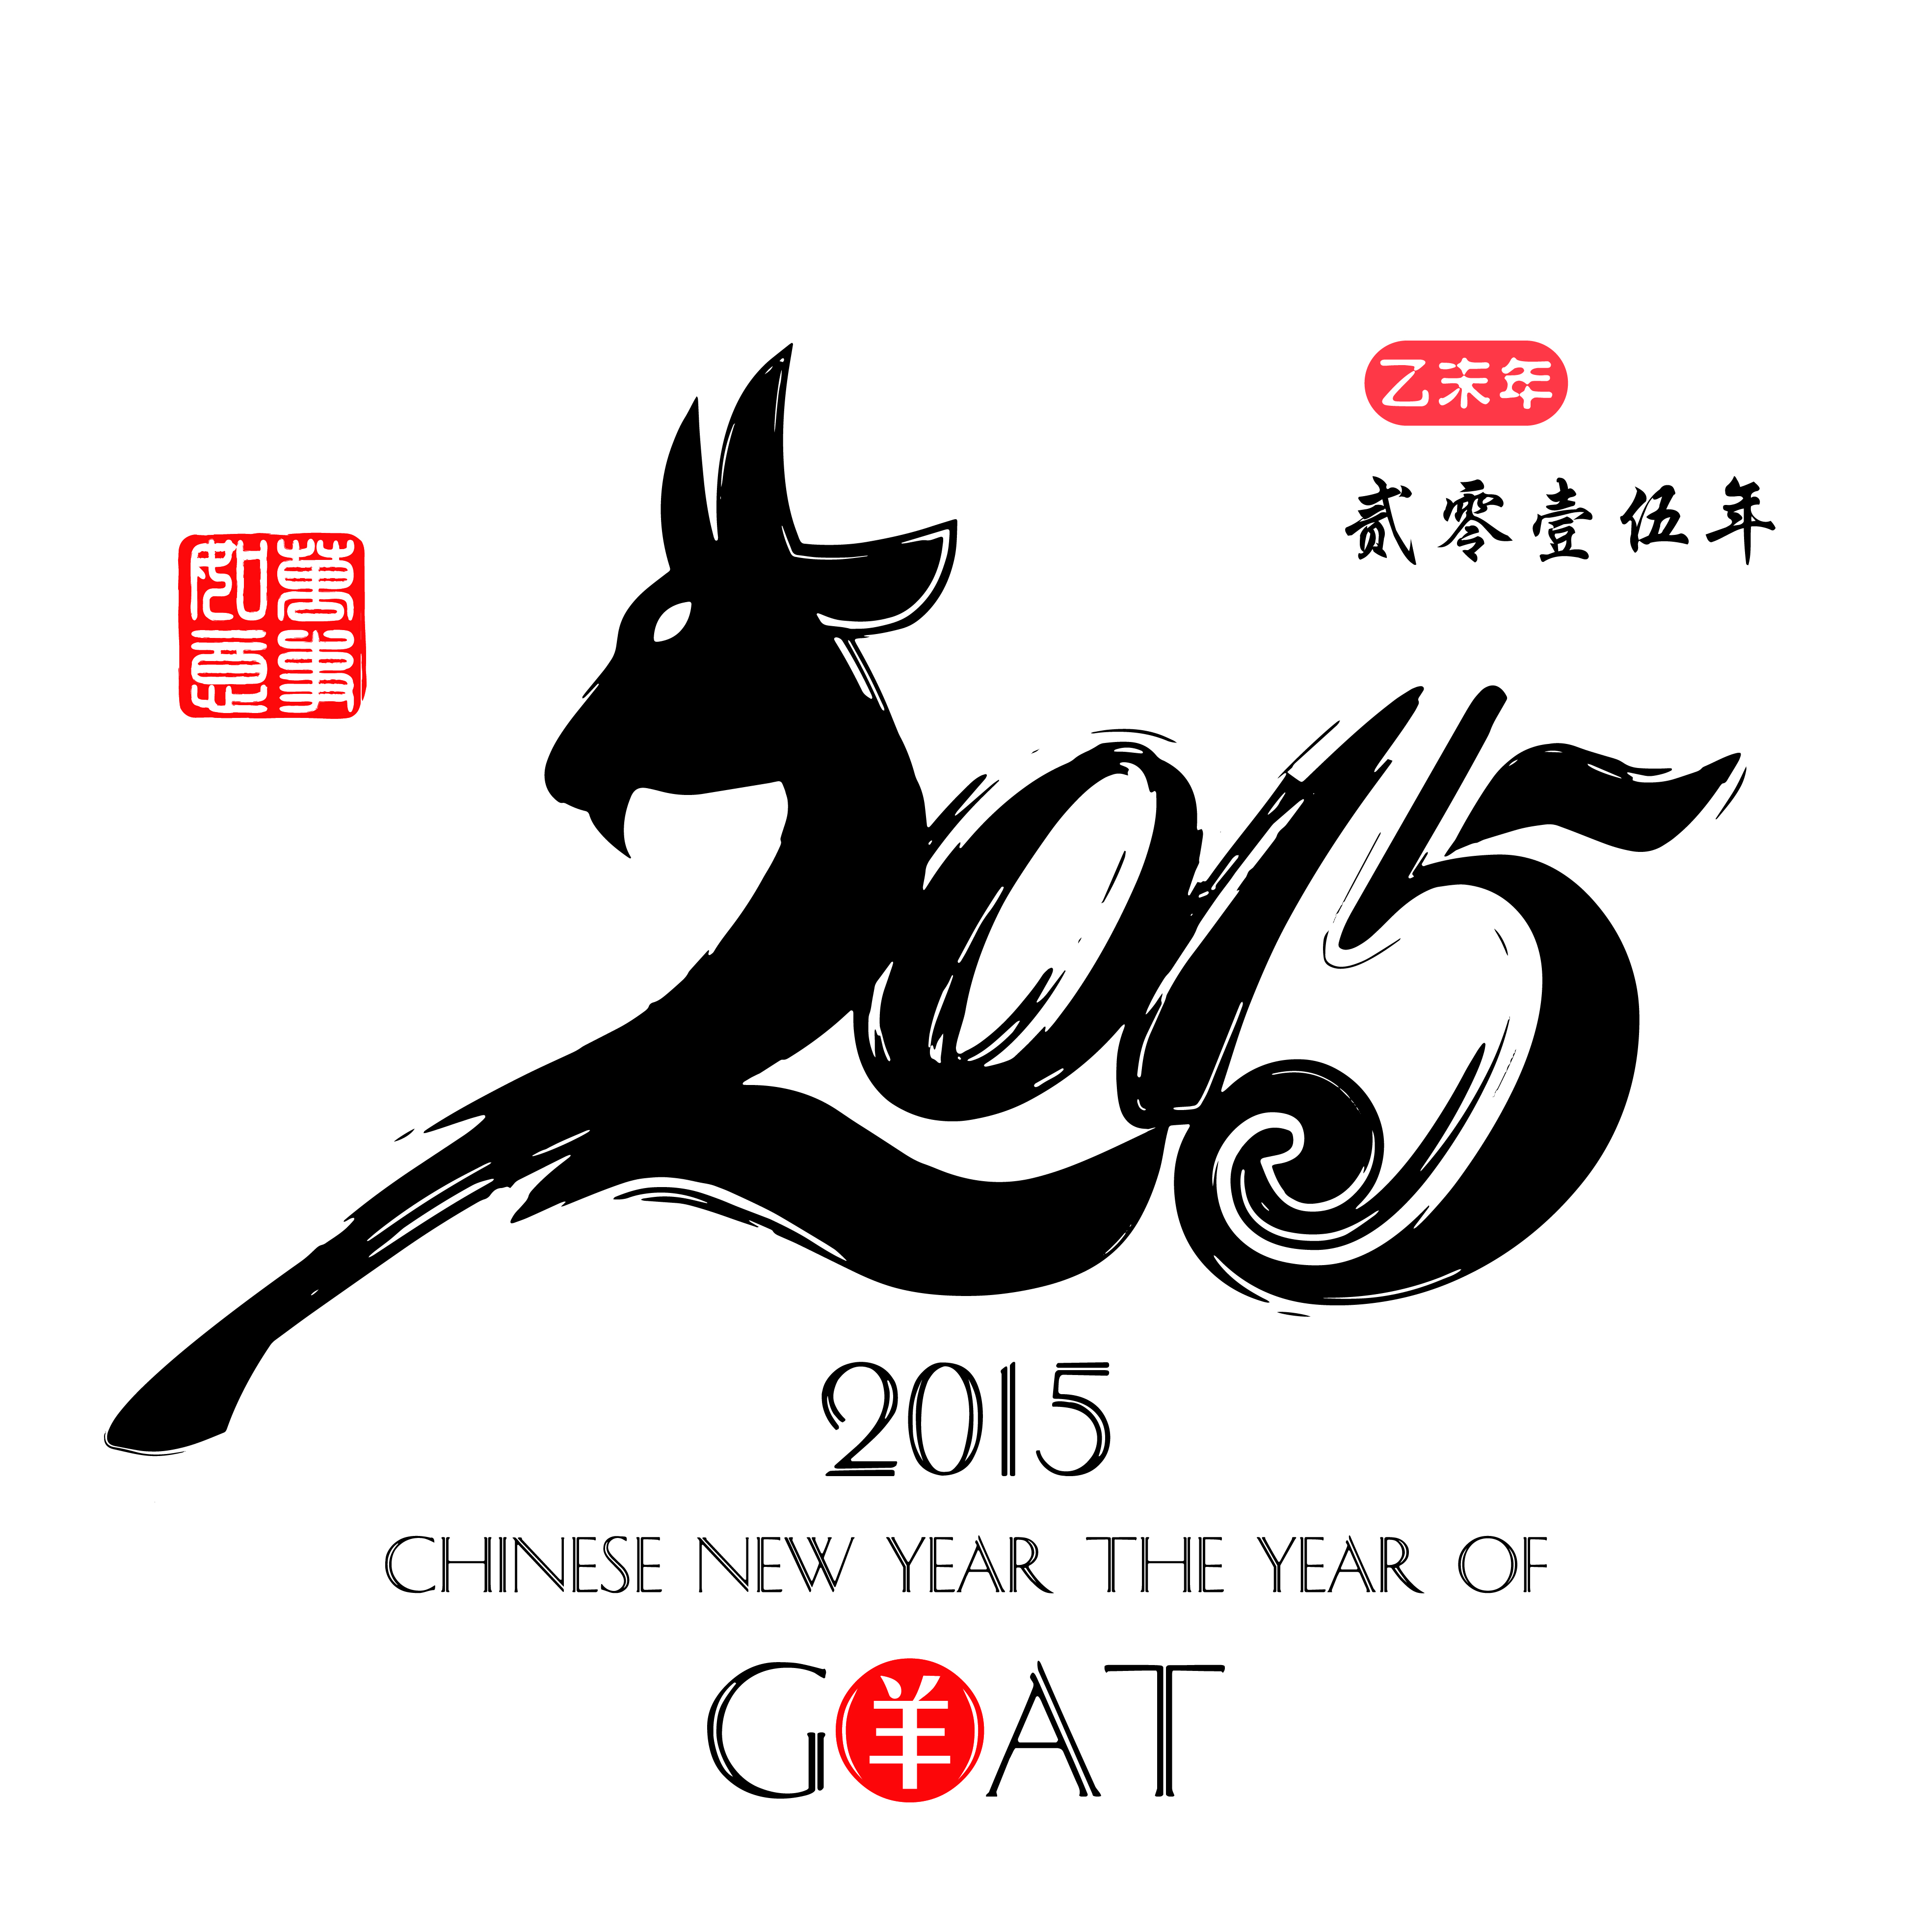 2015 Lunar New Year/ Chinese New Year